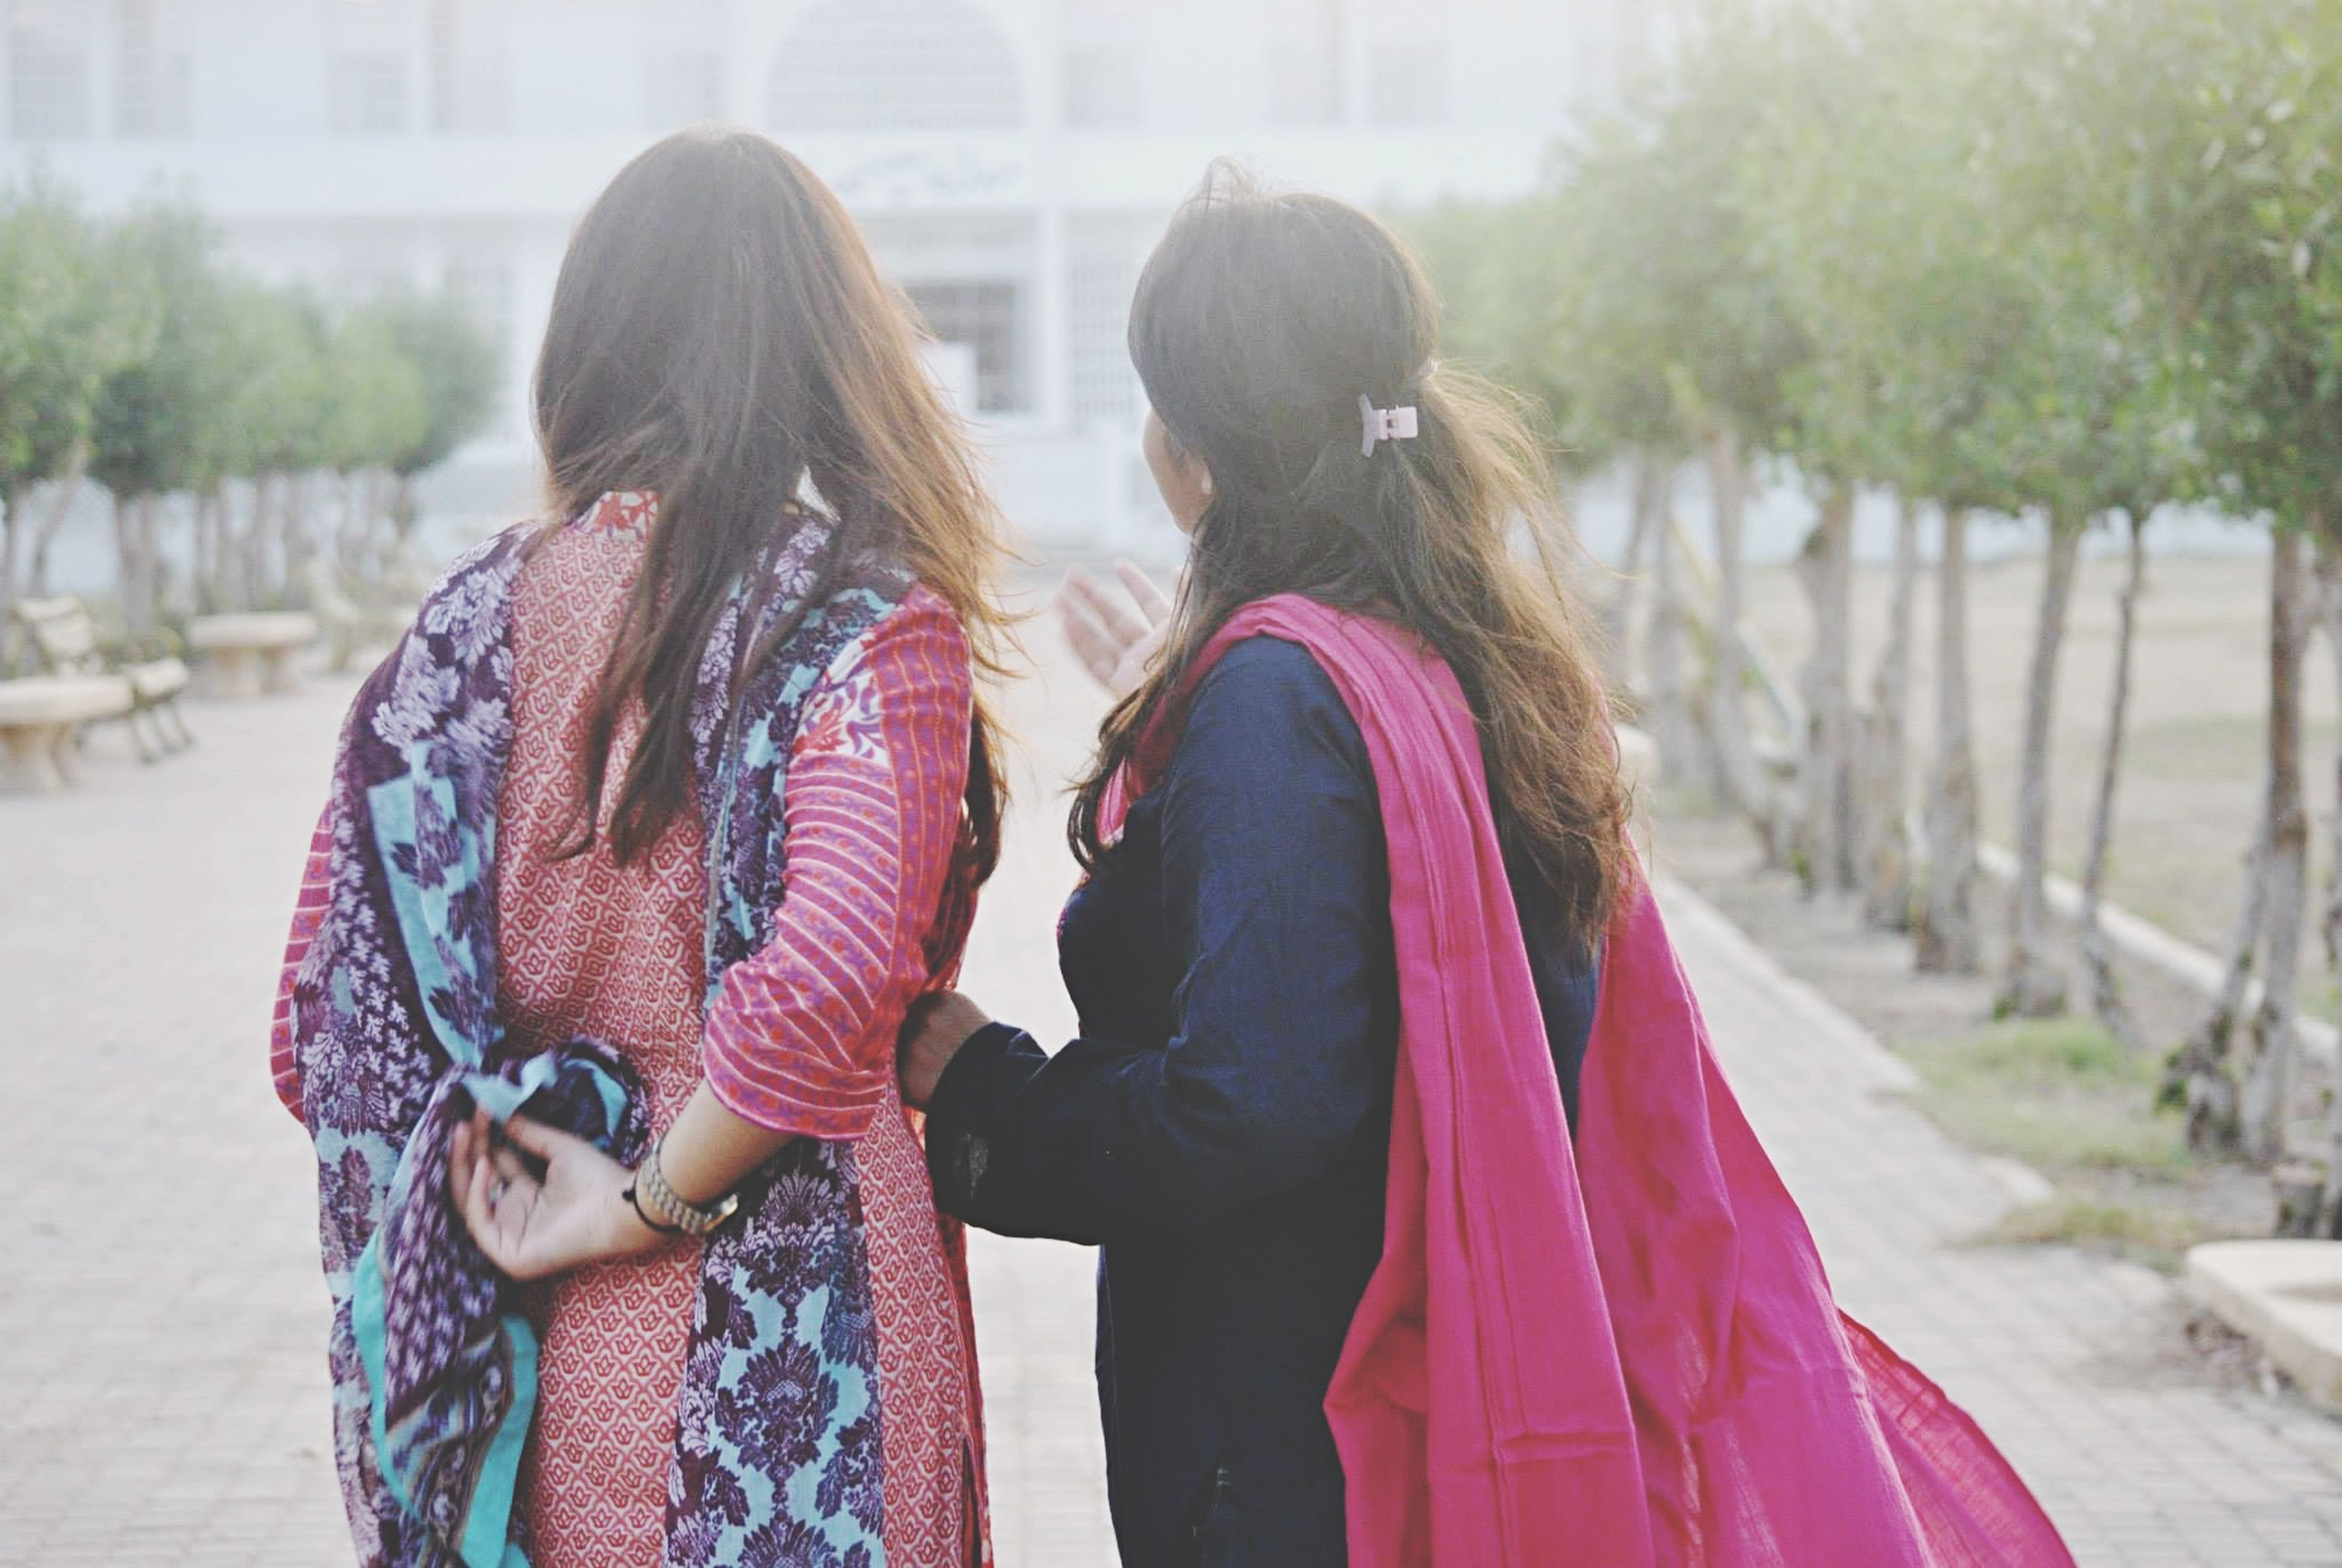 lifestyles, focus on foreground, leisure activity, rear view, person, casual clothing, traditional clothing, waist up, young women, incidental people, standing, day, long hair, outdoors, street, warm clothing, young adult